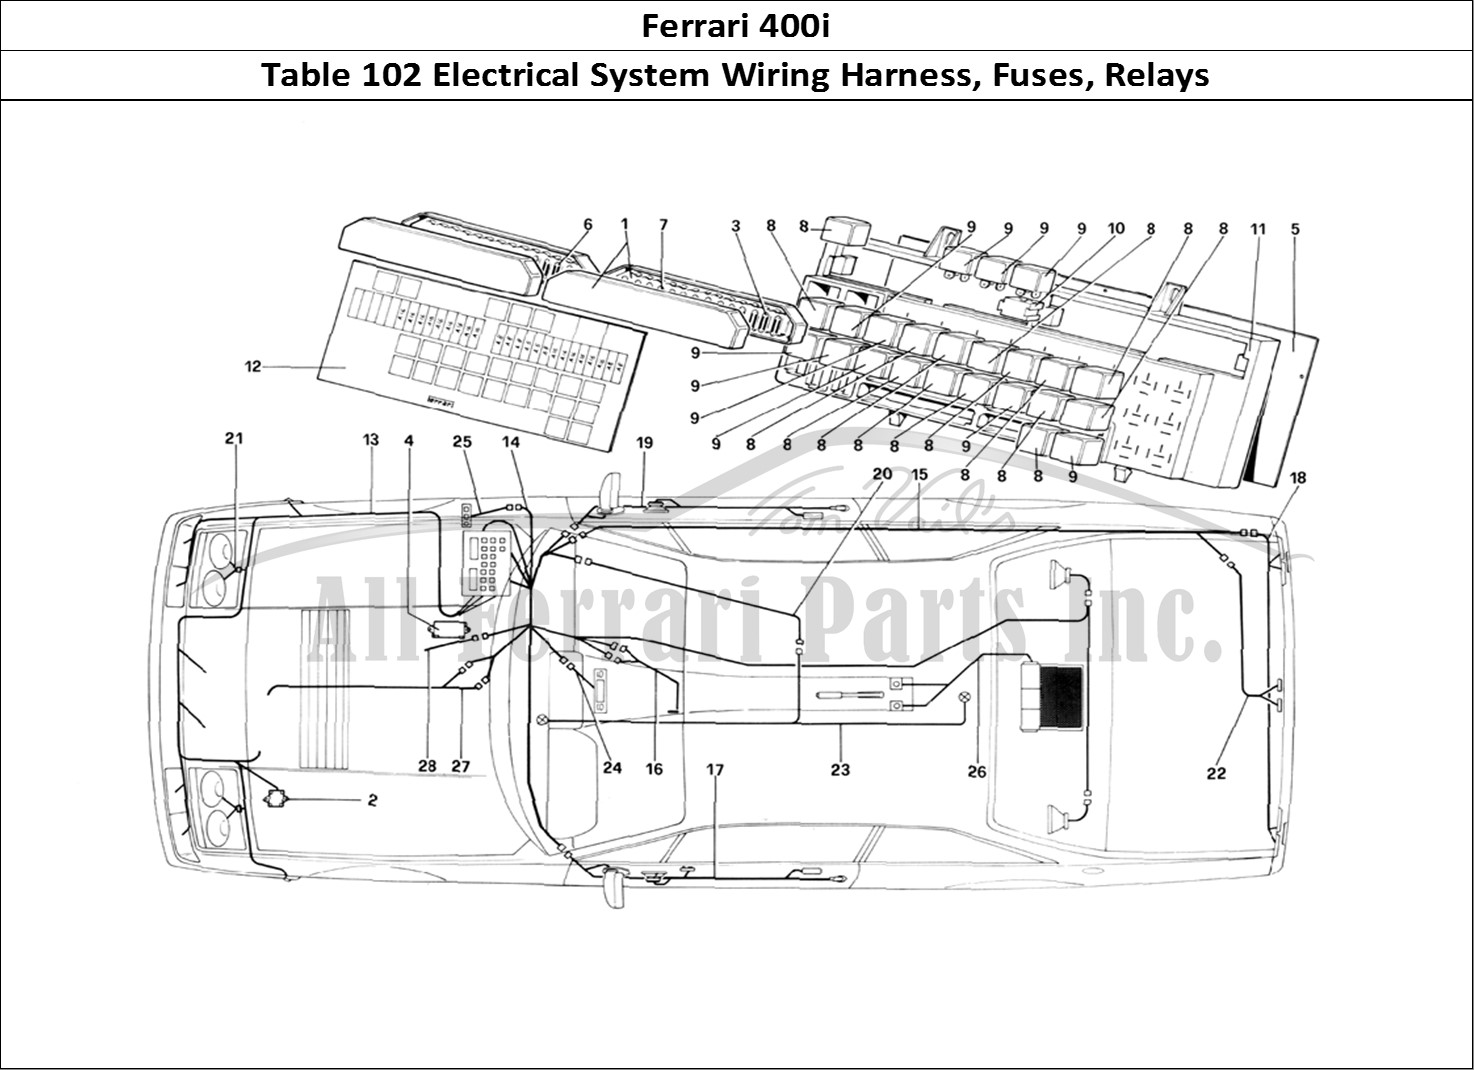 Buy Original Ferrari 400i 102 Electrical System Wiring